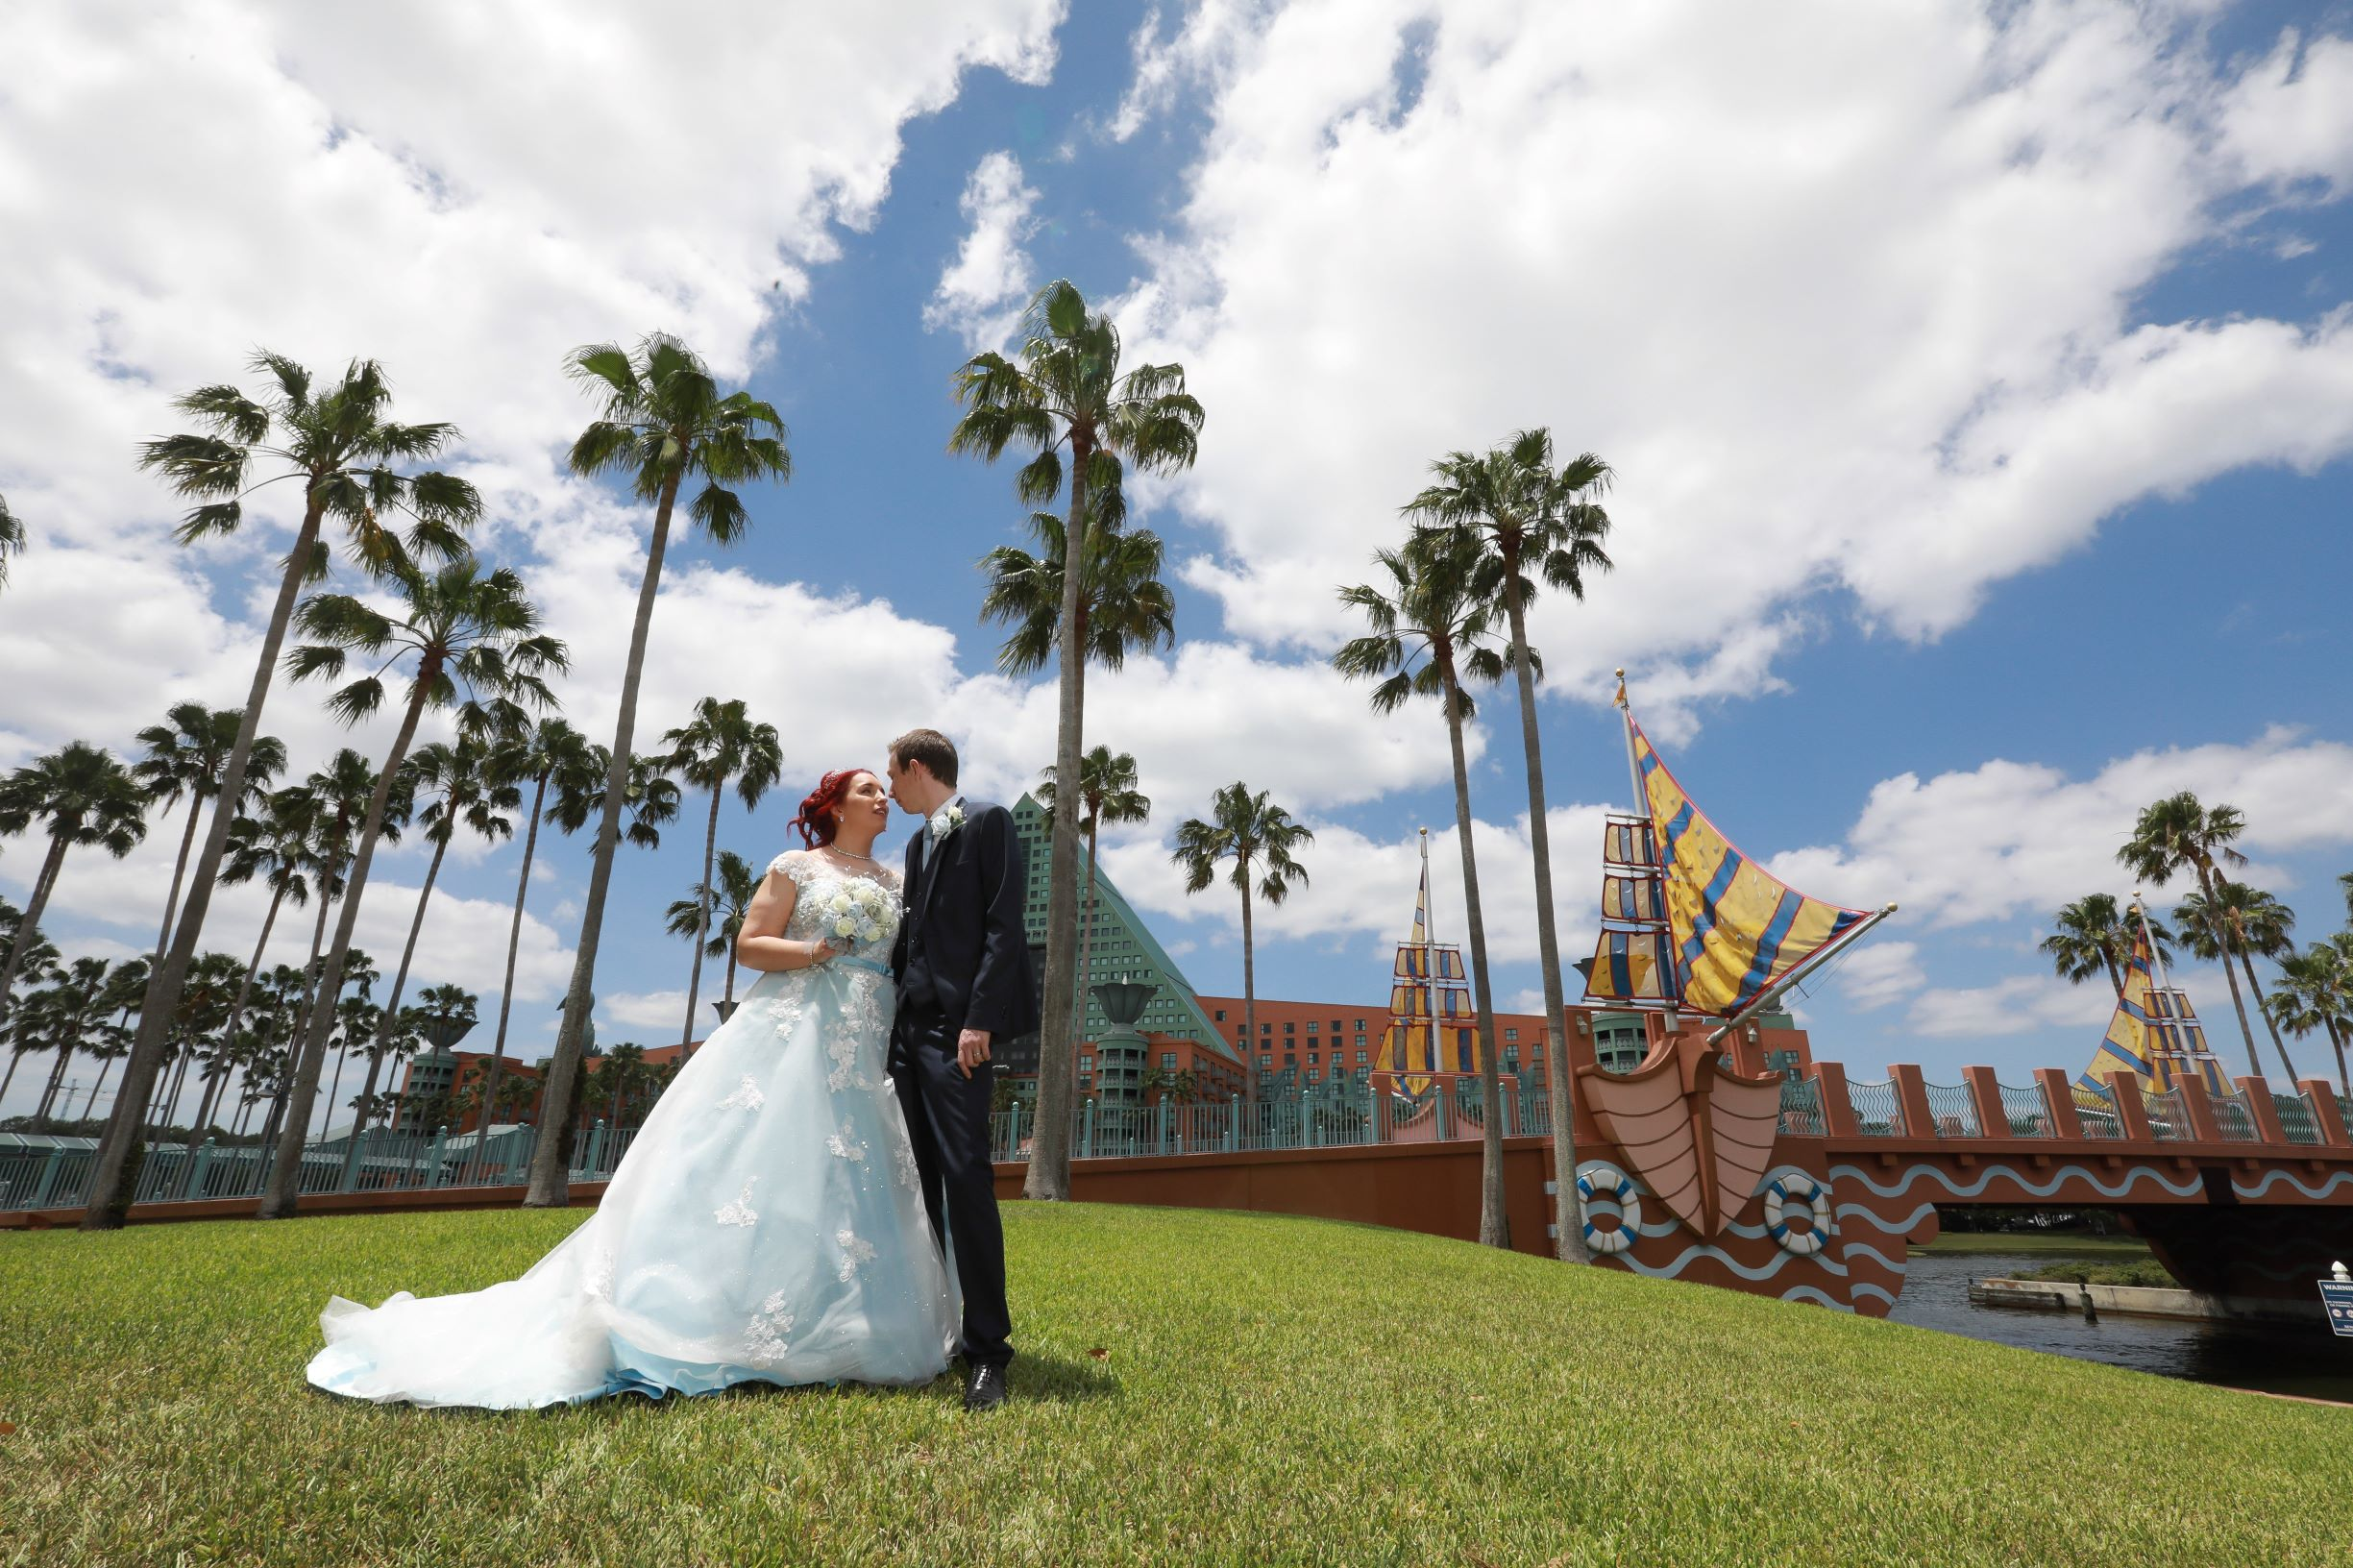 Swan Disney Wedding Orlando | The Real Wedding of Kelly and Steven